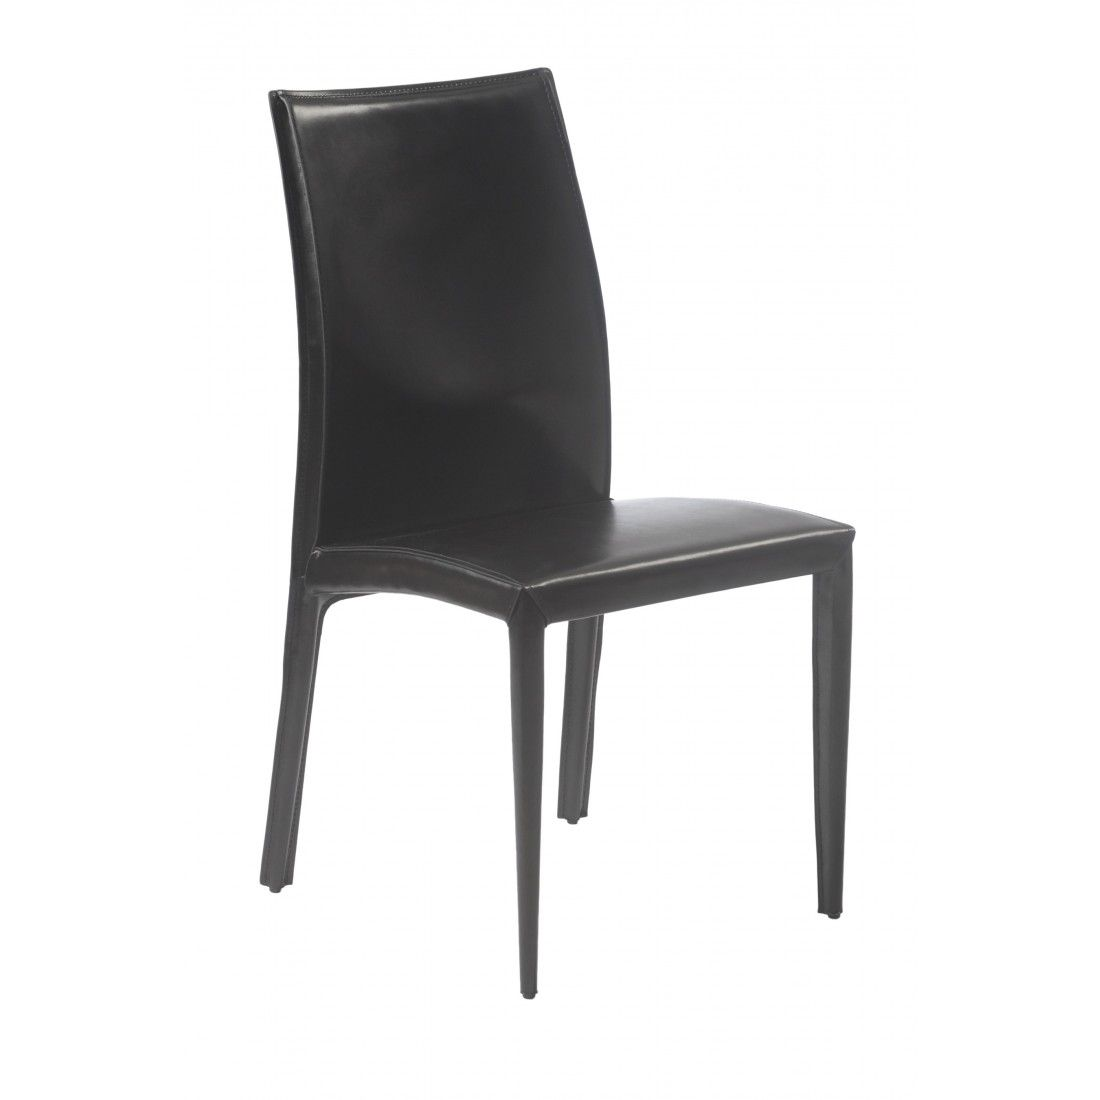 Dafney Side Chair (Set Of 2) - Black Leather http://www.franceandson.com/dafney-side-chair-set-of-2-black-leather.html